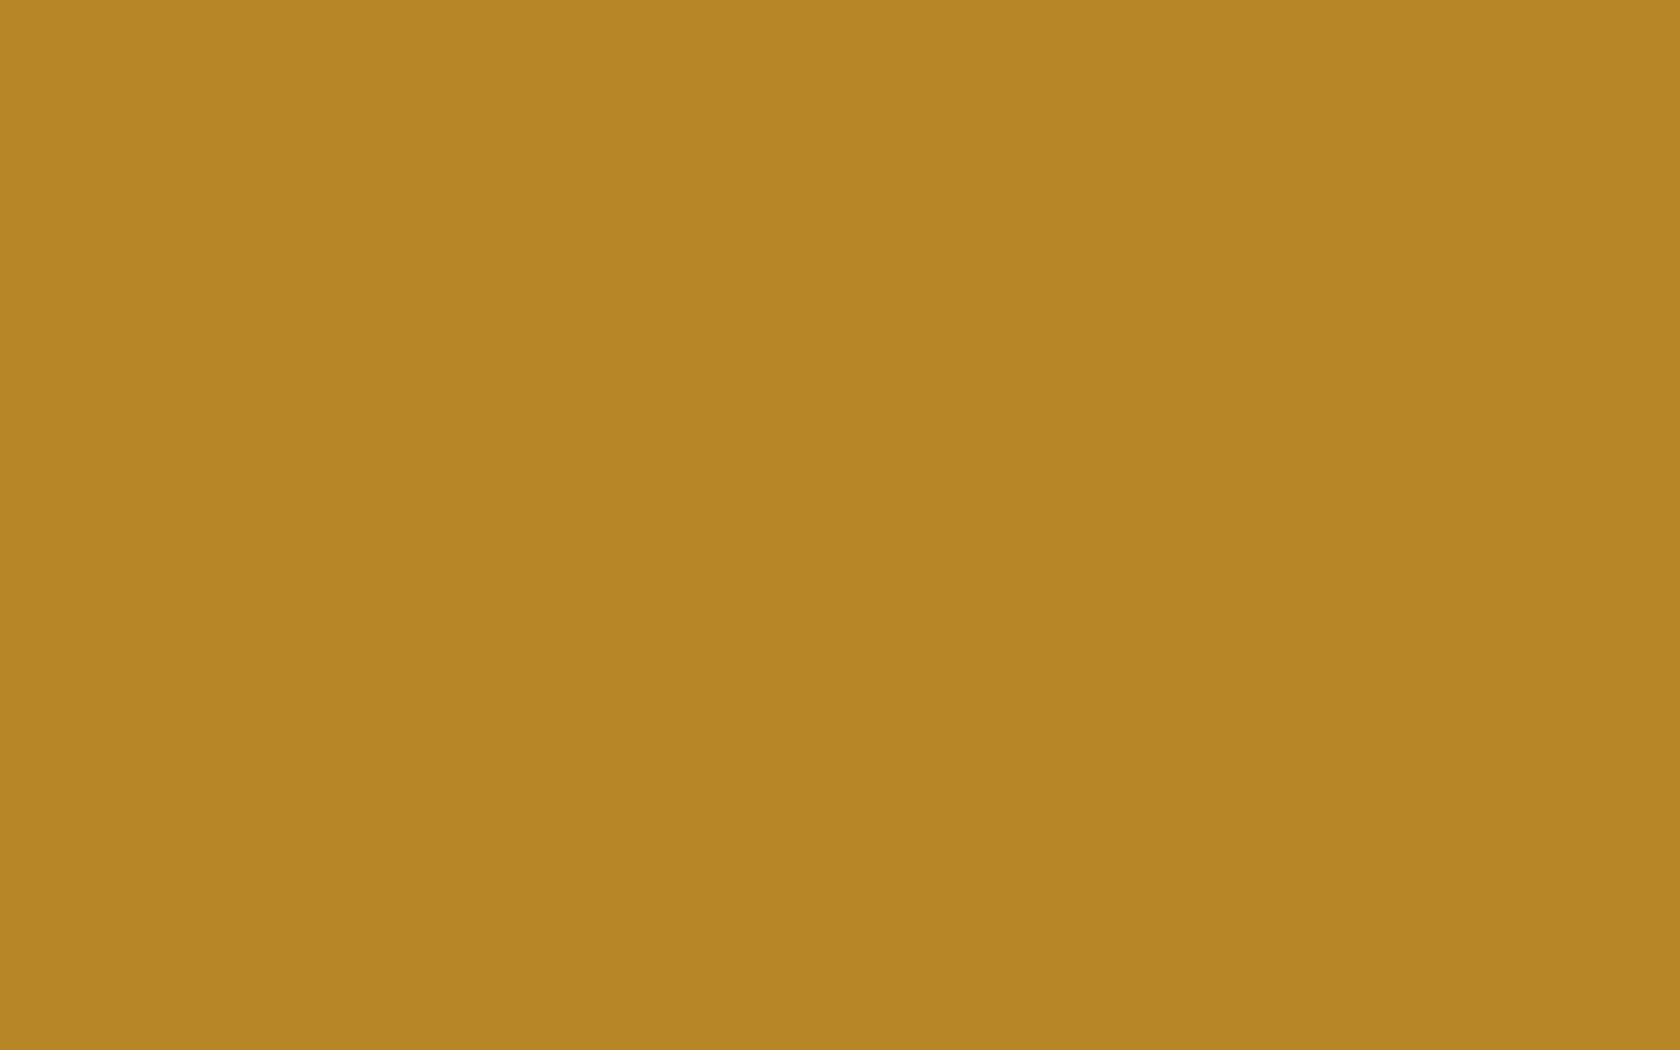 1680x1050 University Of California Gold Solid Color Background